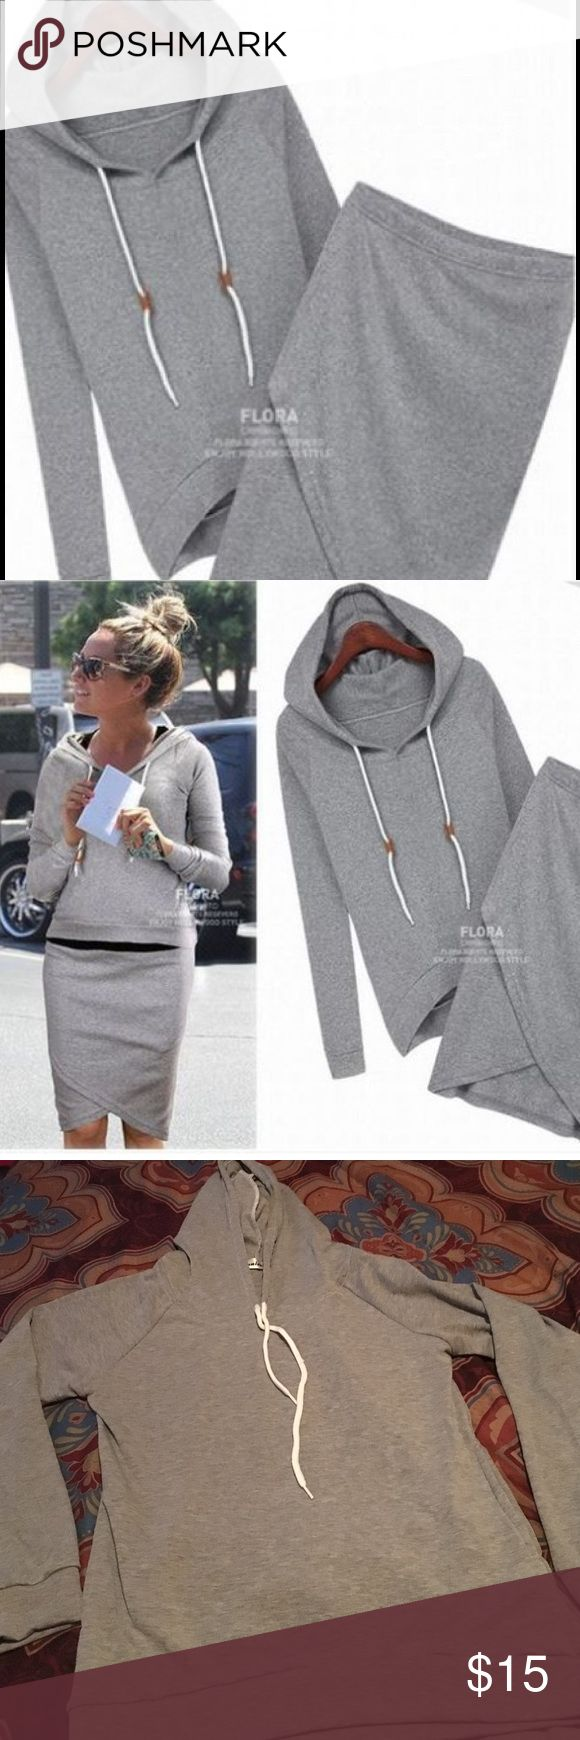 Gray Two Piece Sweater Skirt Set New women's gray two piece skirt set. Long sleeve hoodie and Bodycon skirt. Super cute with tennis shoes! True to size. Brand new, tags removed Unbranded Skirts Skirt Sets